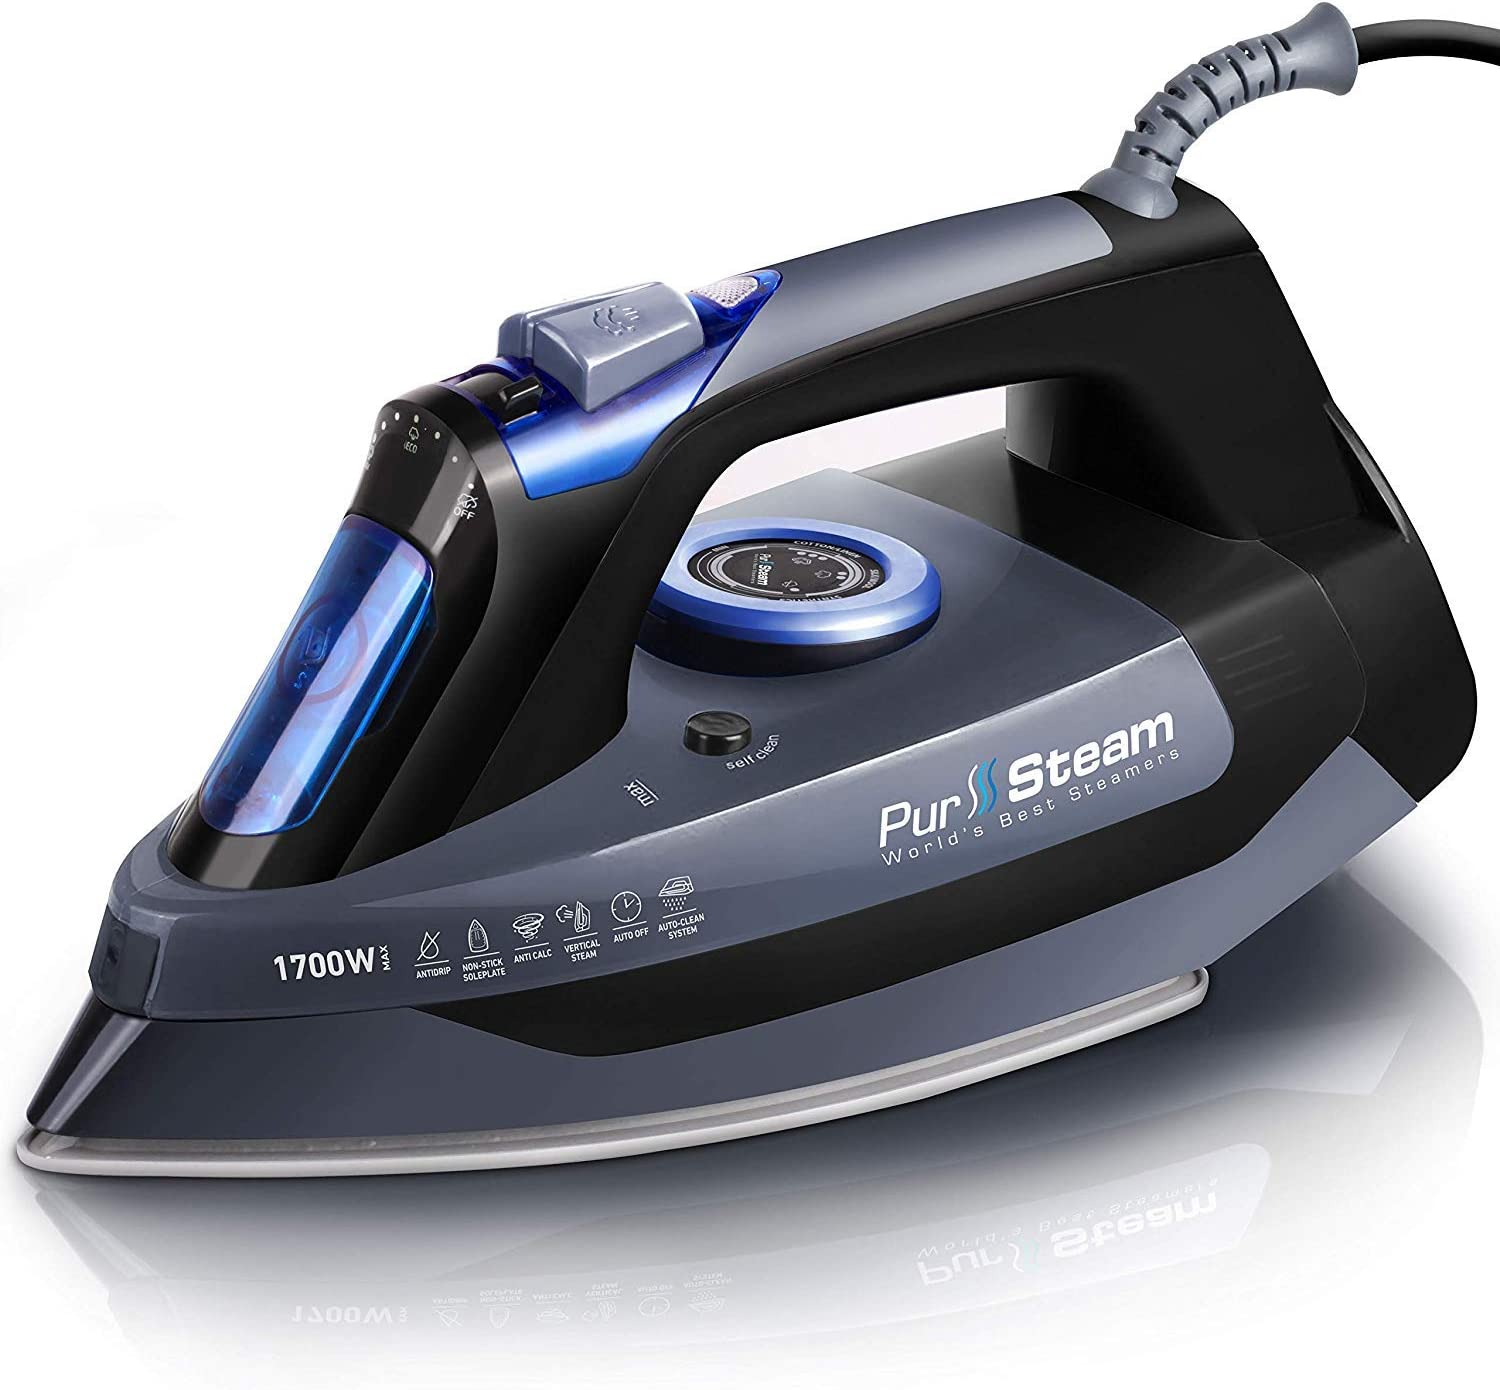 Best Steam Irons: Professional Resistant 1700W